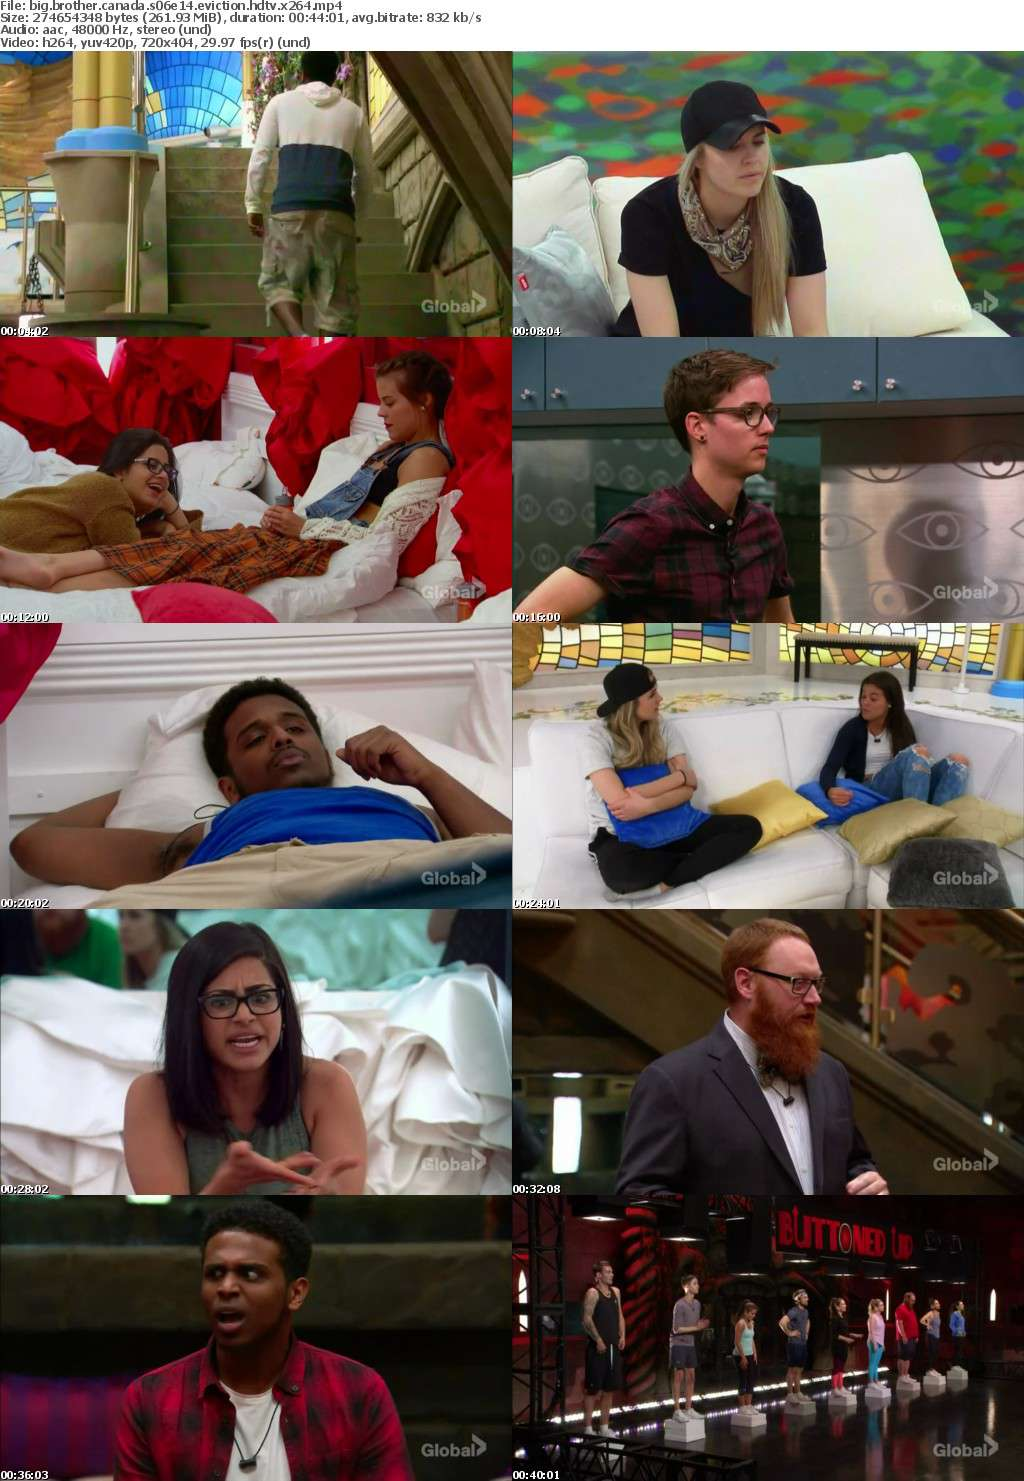 big brother canada s06e14 eviction hdtv x264